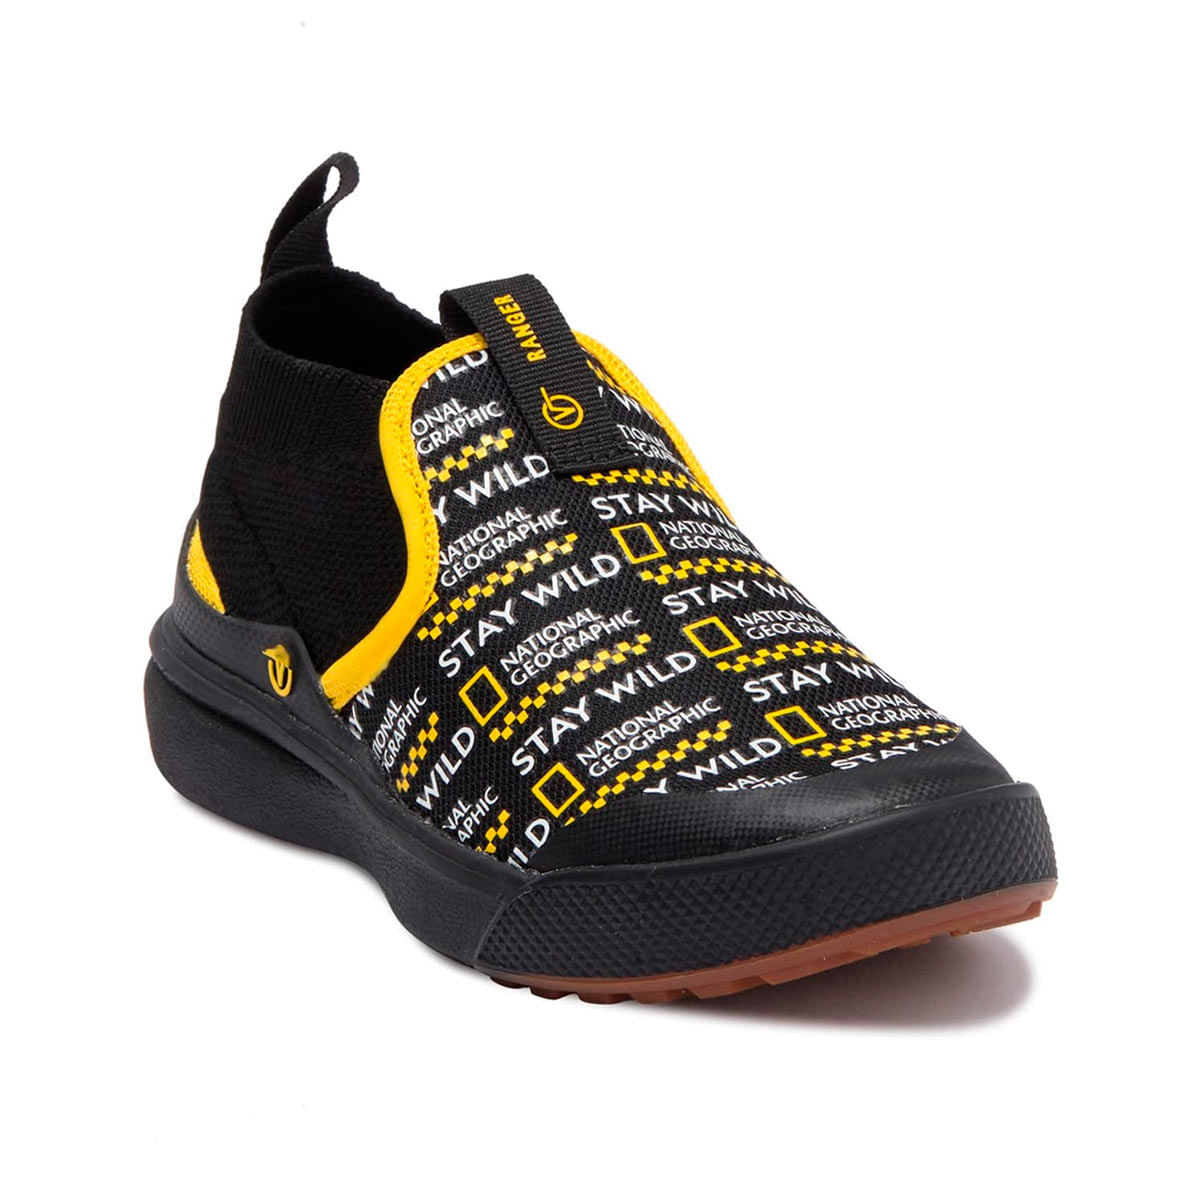 Tenis-Infantil-Vans-XtremeRanger-National-Geographic--26-ao-32--VN0A4BUAXWI--VER21-